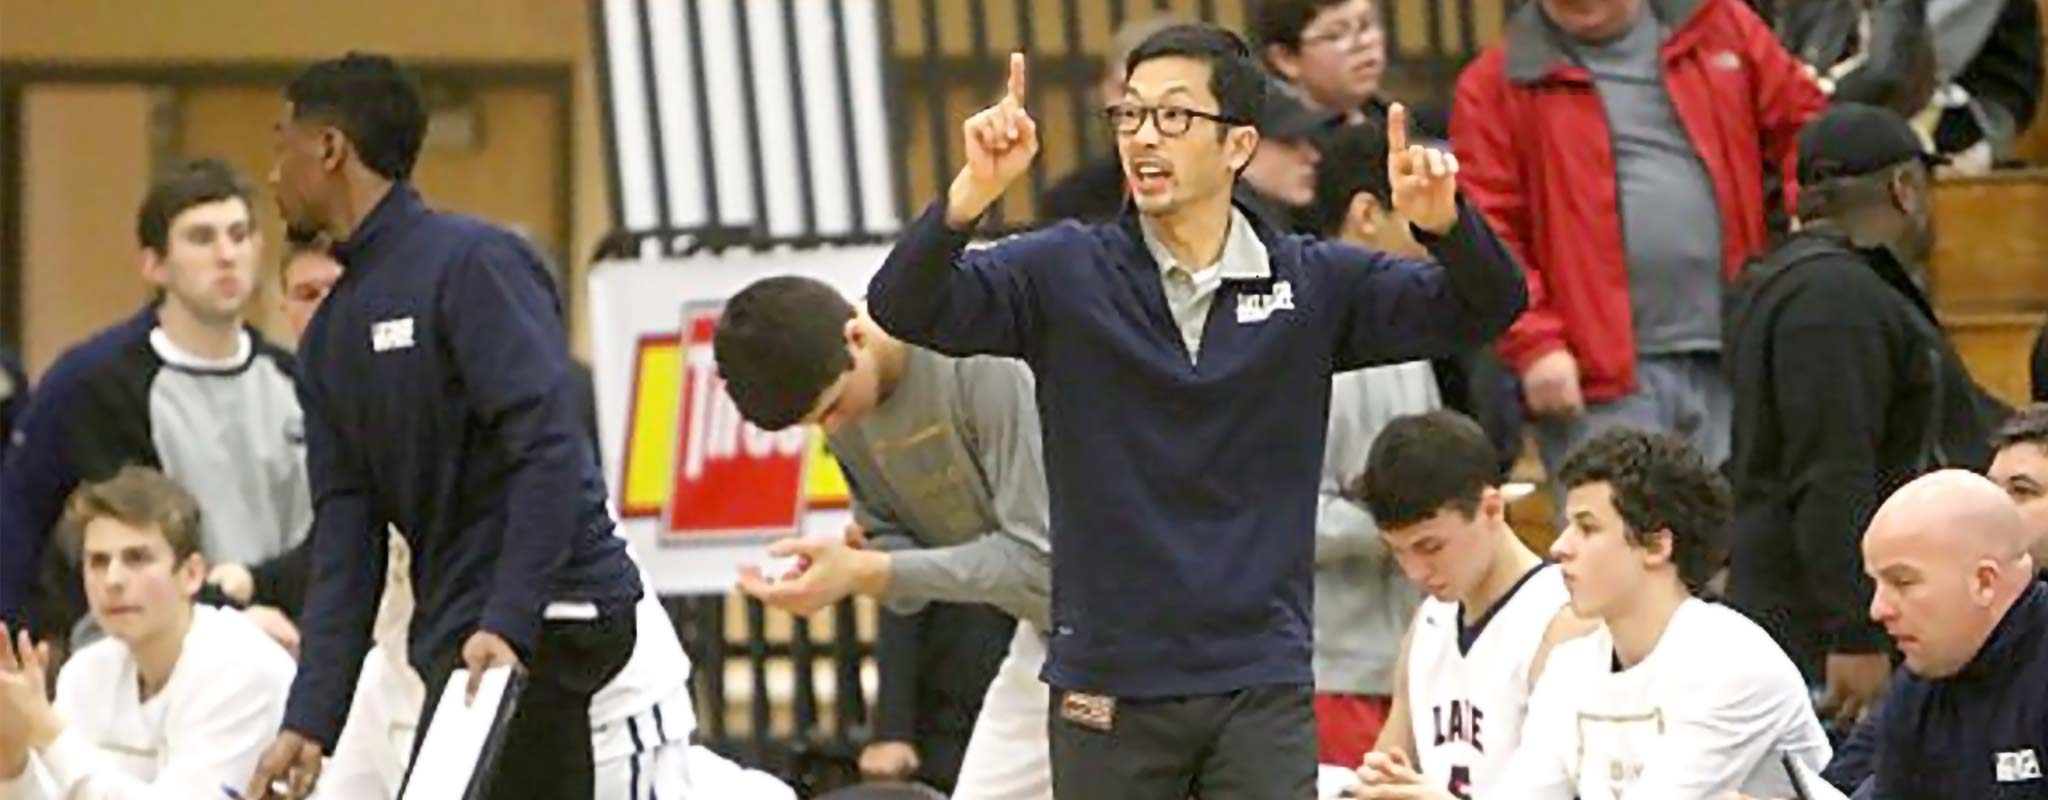 Lake Oswego basketball coach, Marshall Cho, courtside during a game.